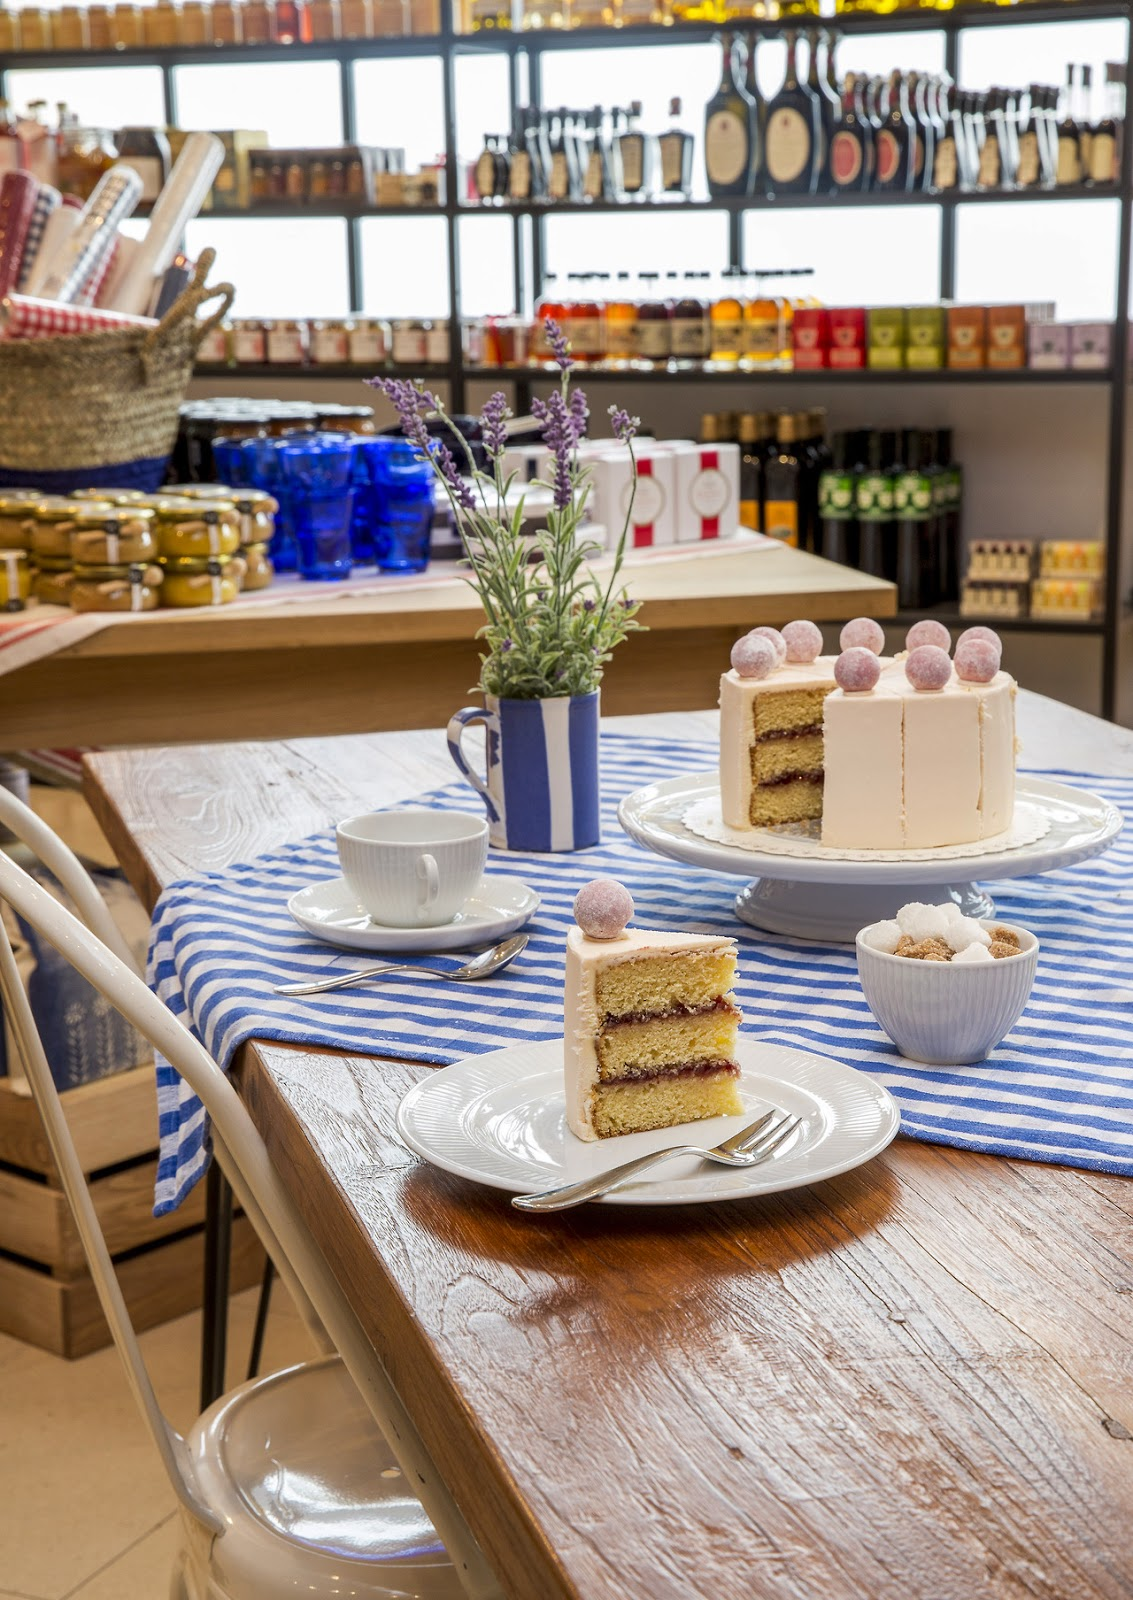 Where I Can Eat A Cake In Central London